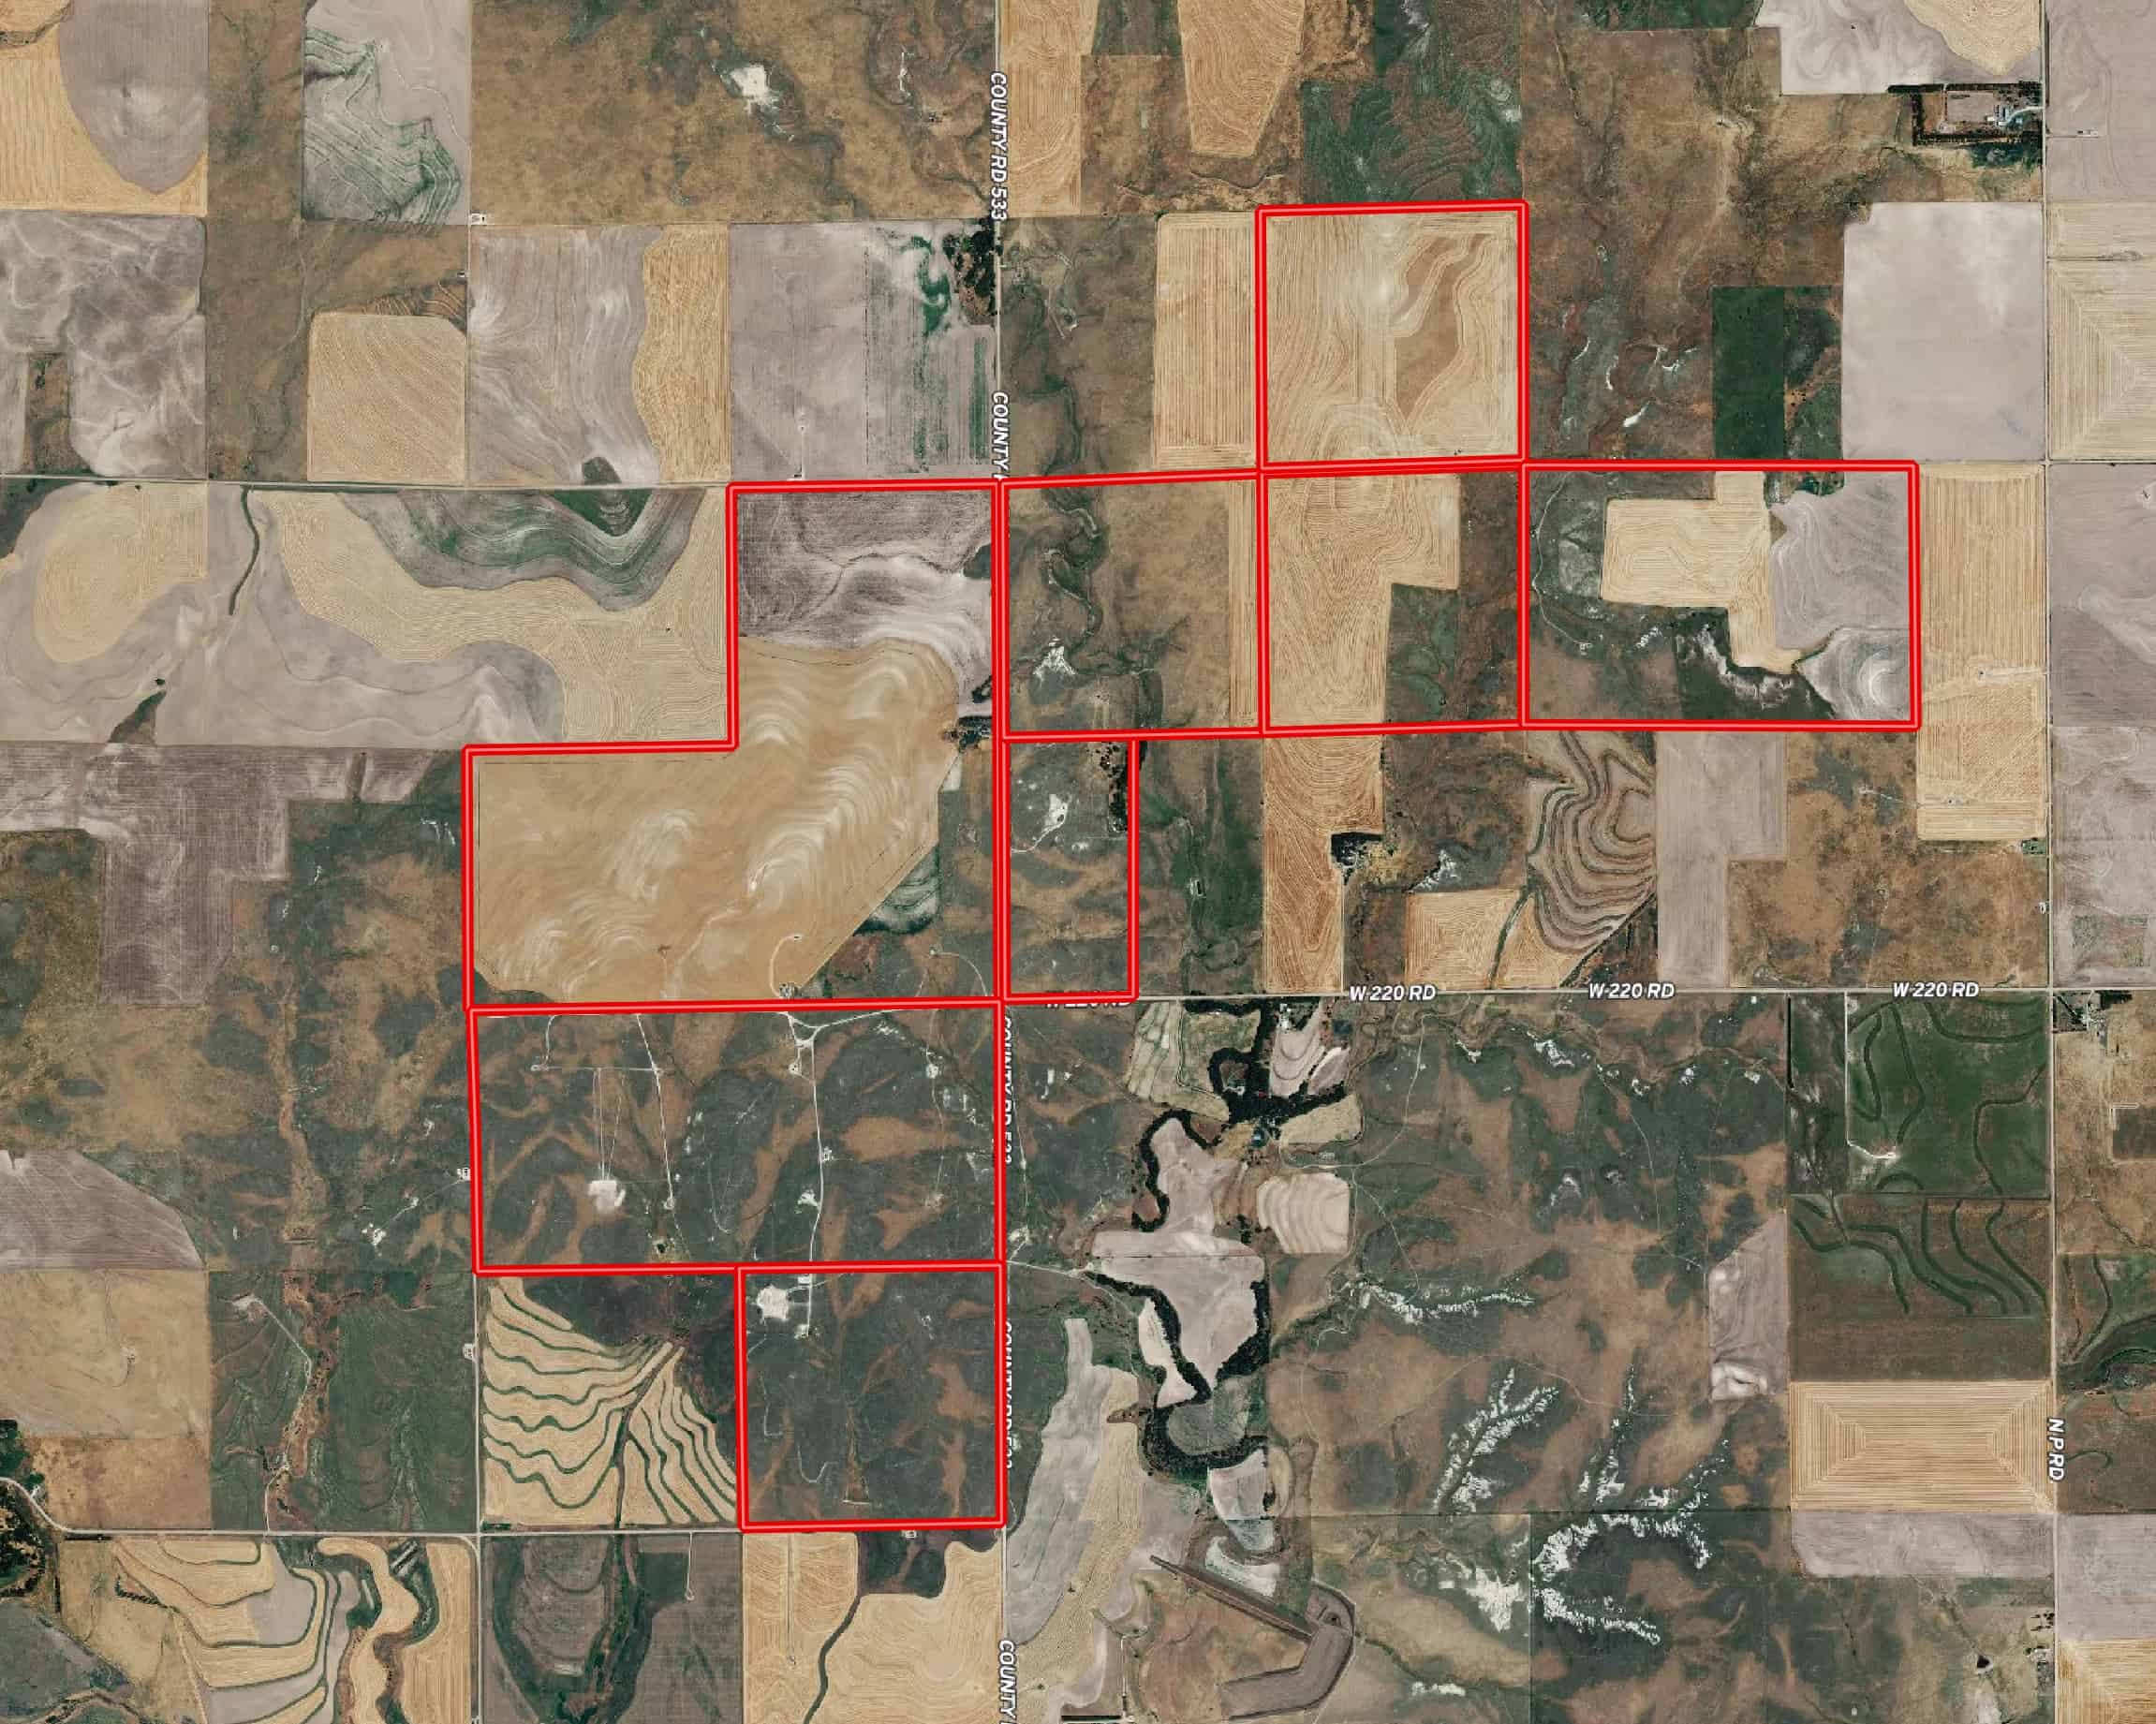 Crop and Grass Land For Sale in Western Kansas